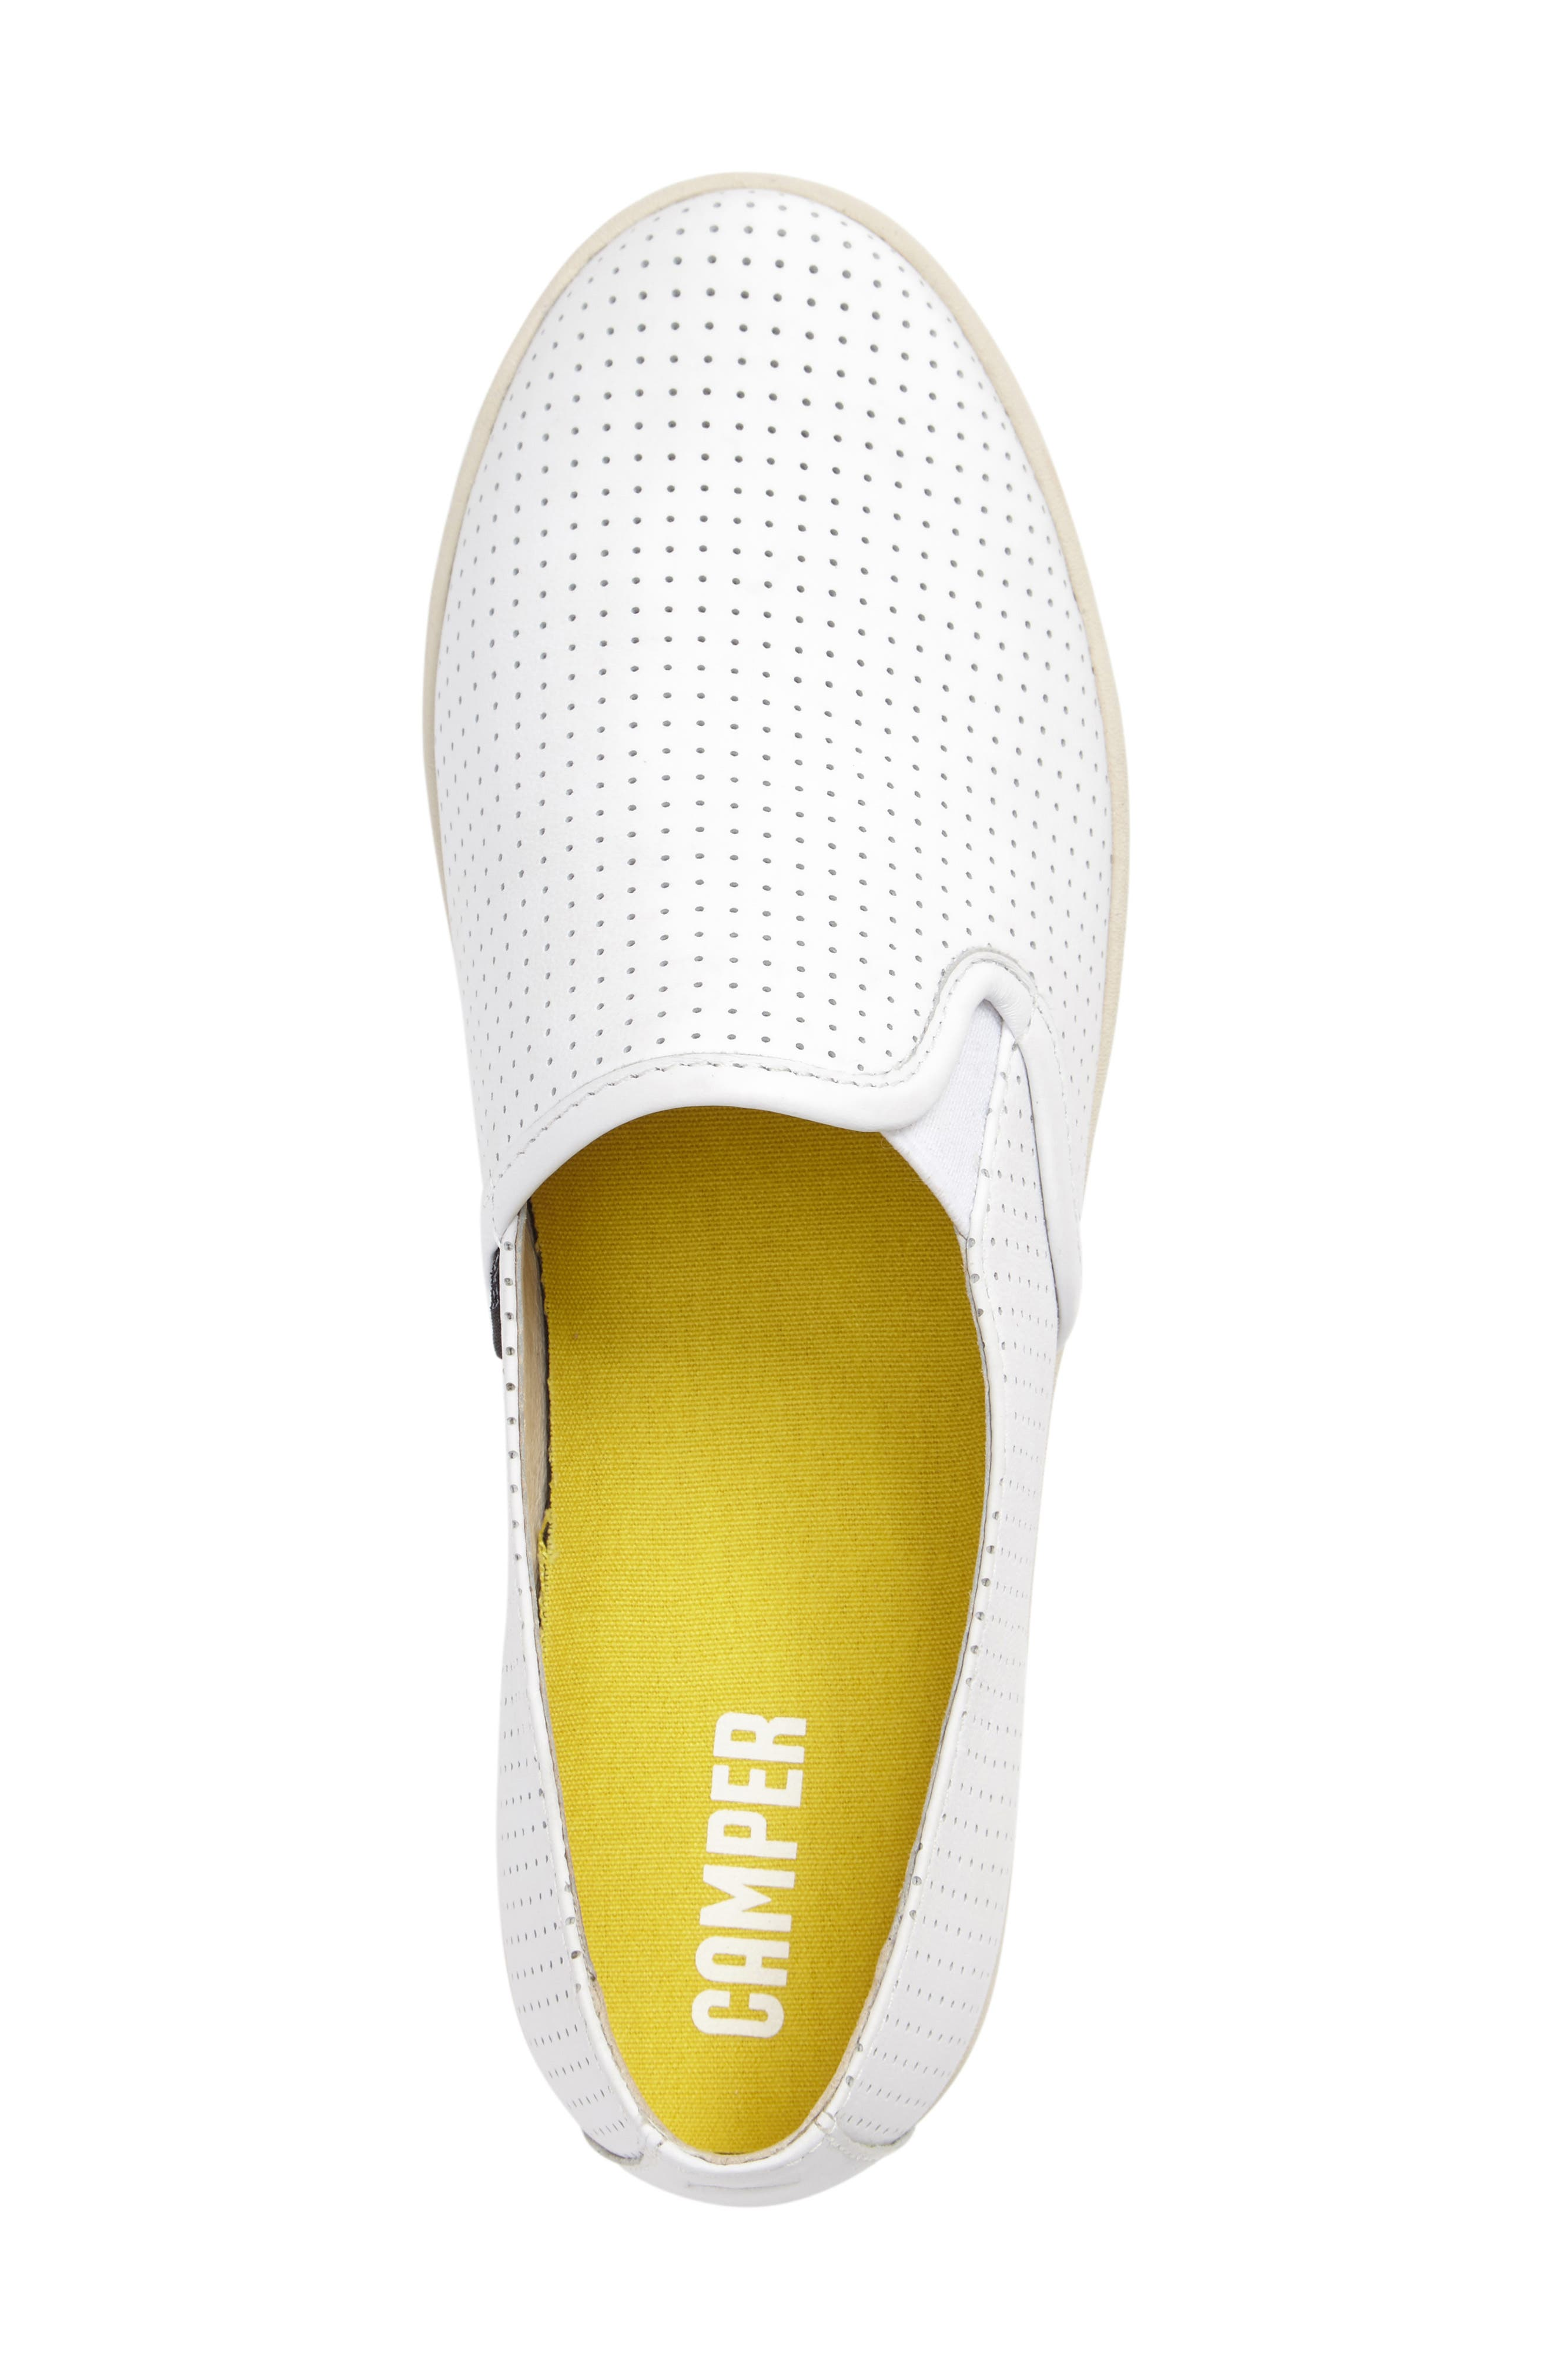 Uno Perforated Slip-On Sneaker,                             Alternate thumbnail 3, color,                             100